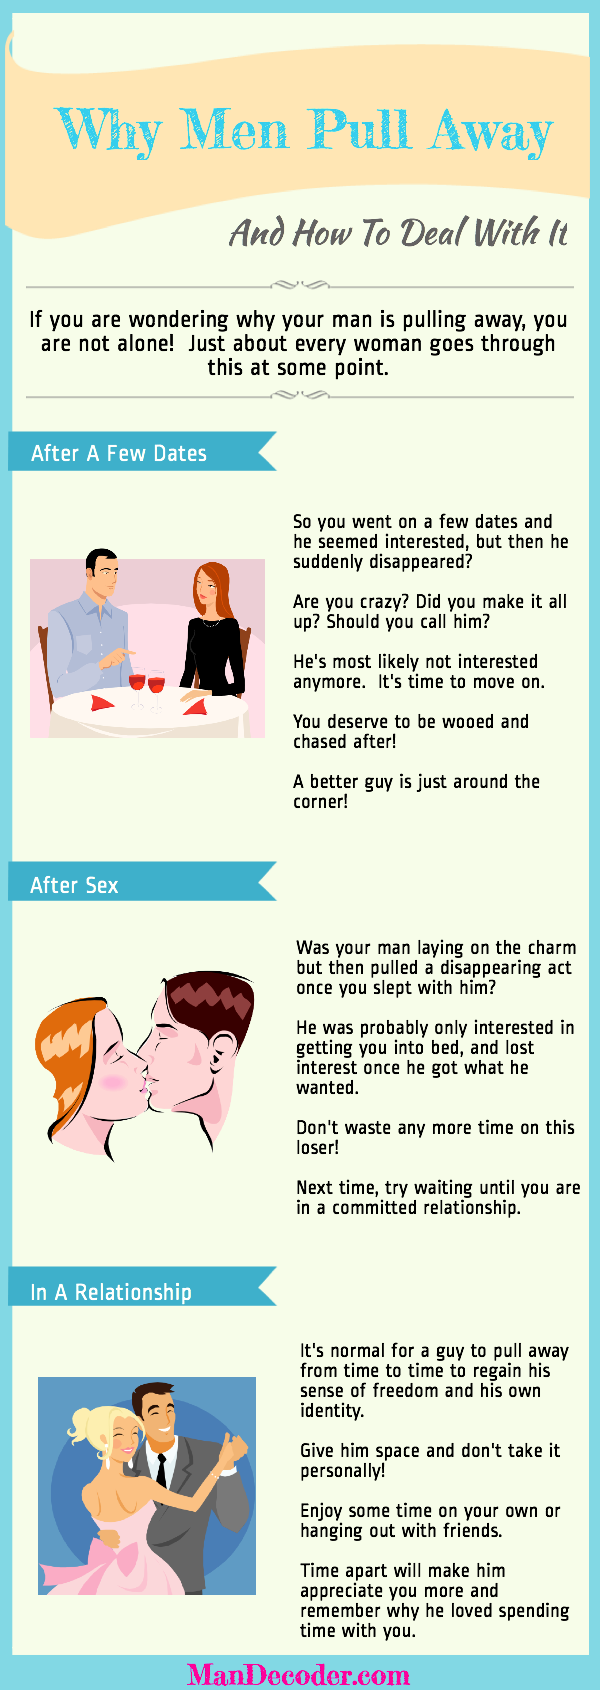 How often should he call or text in early dating